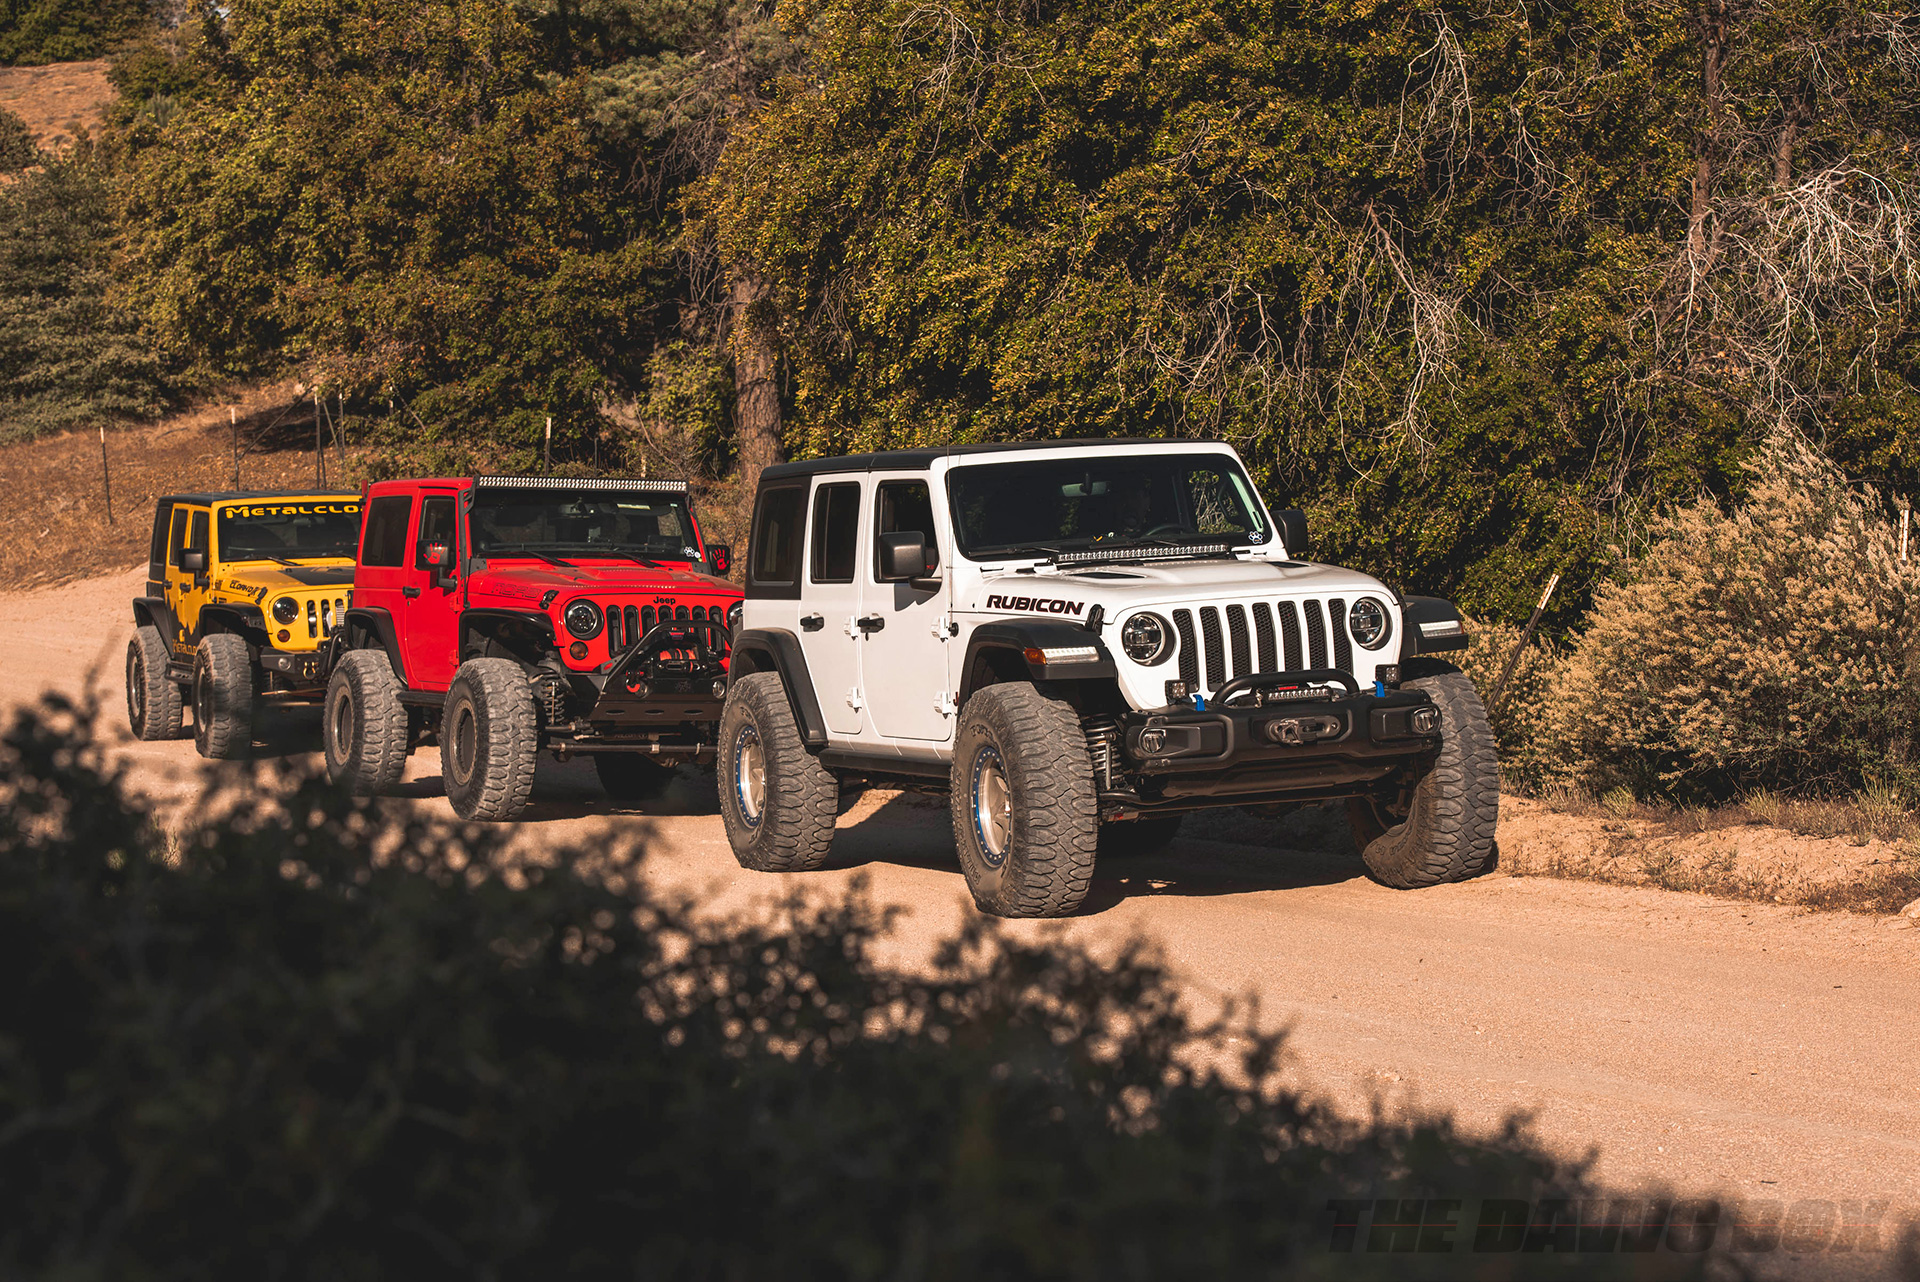 Jeep JKs with 37, and 38 inch Milestar Patagonia MT tires